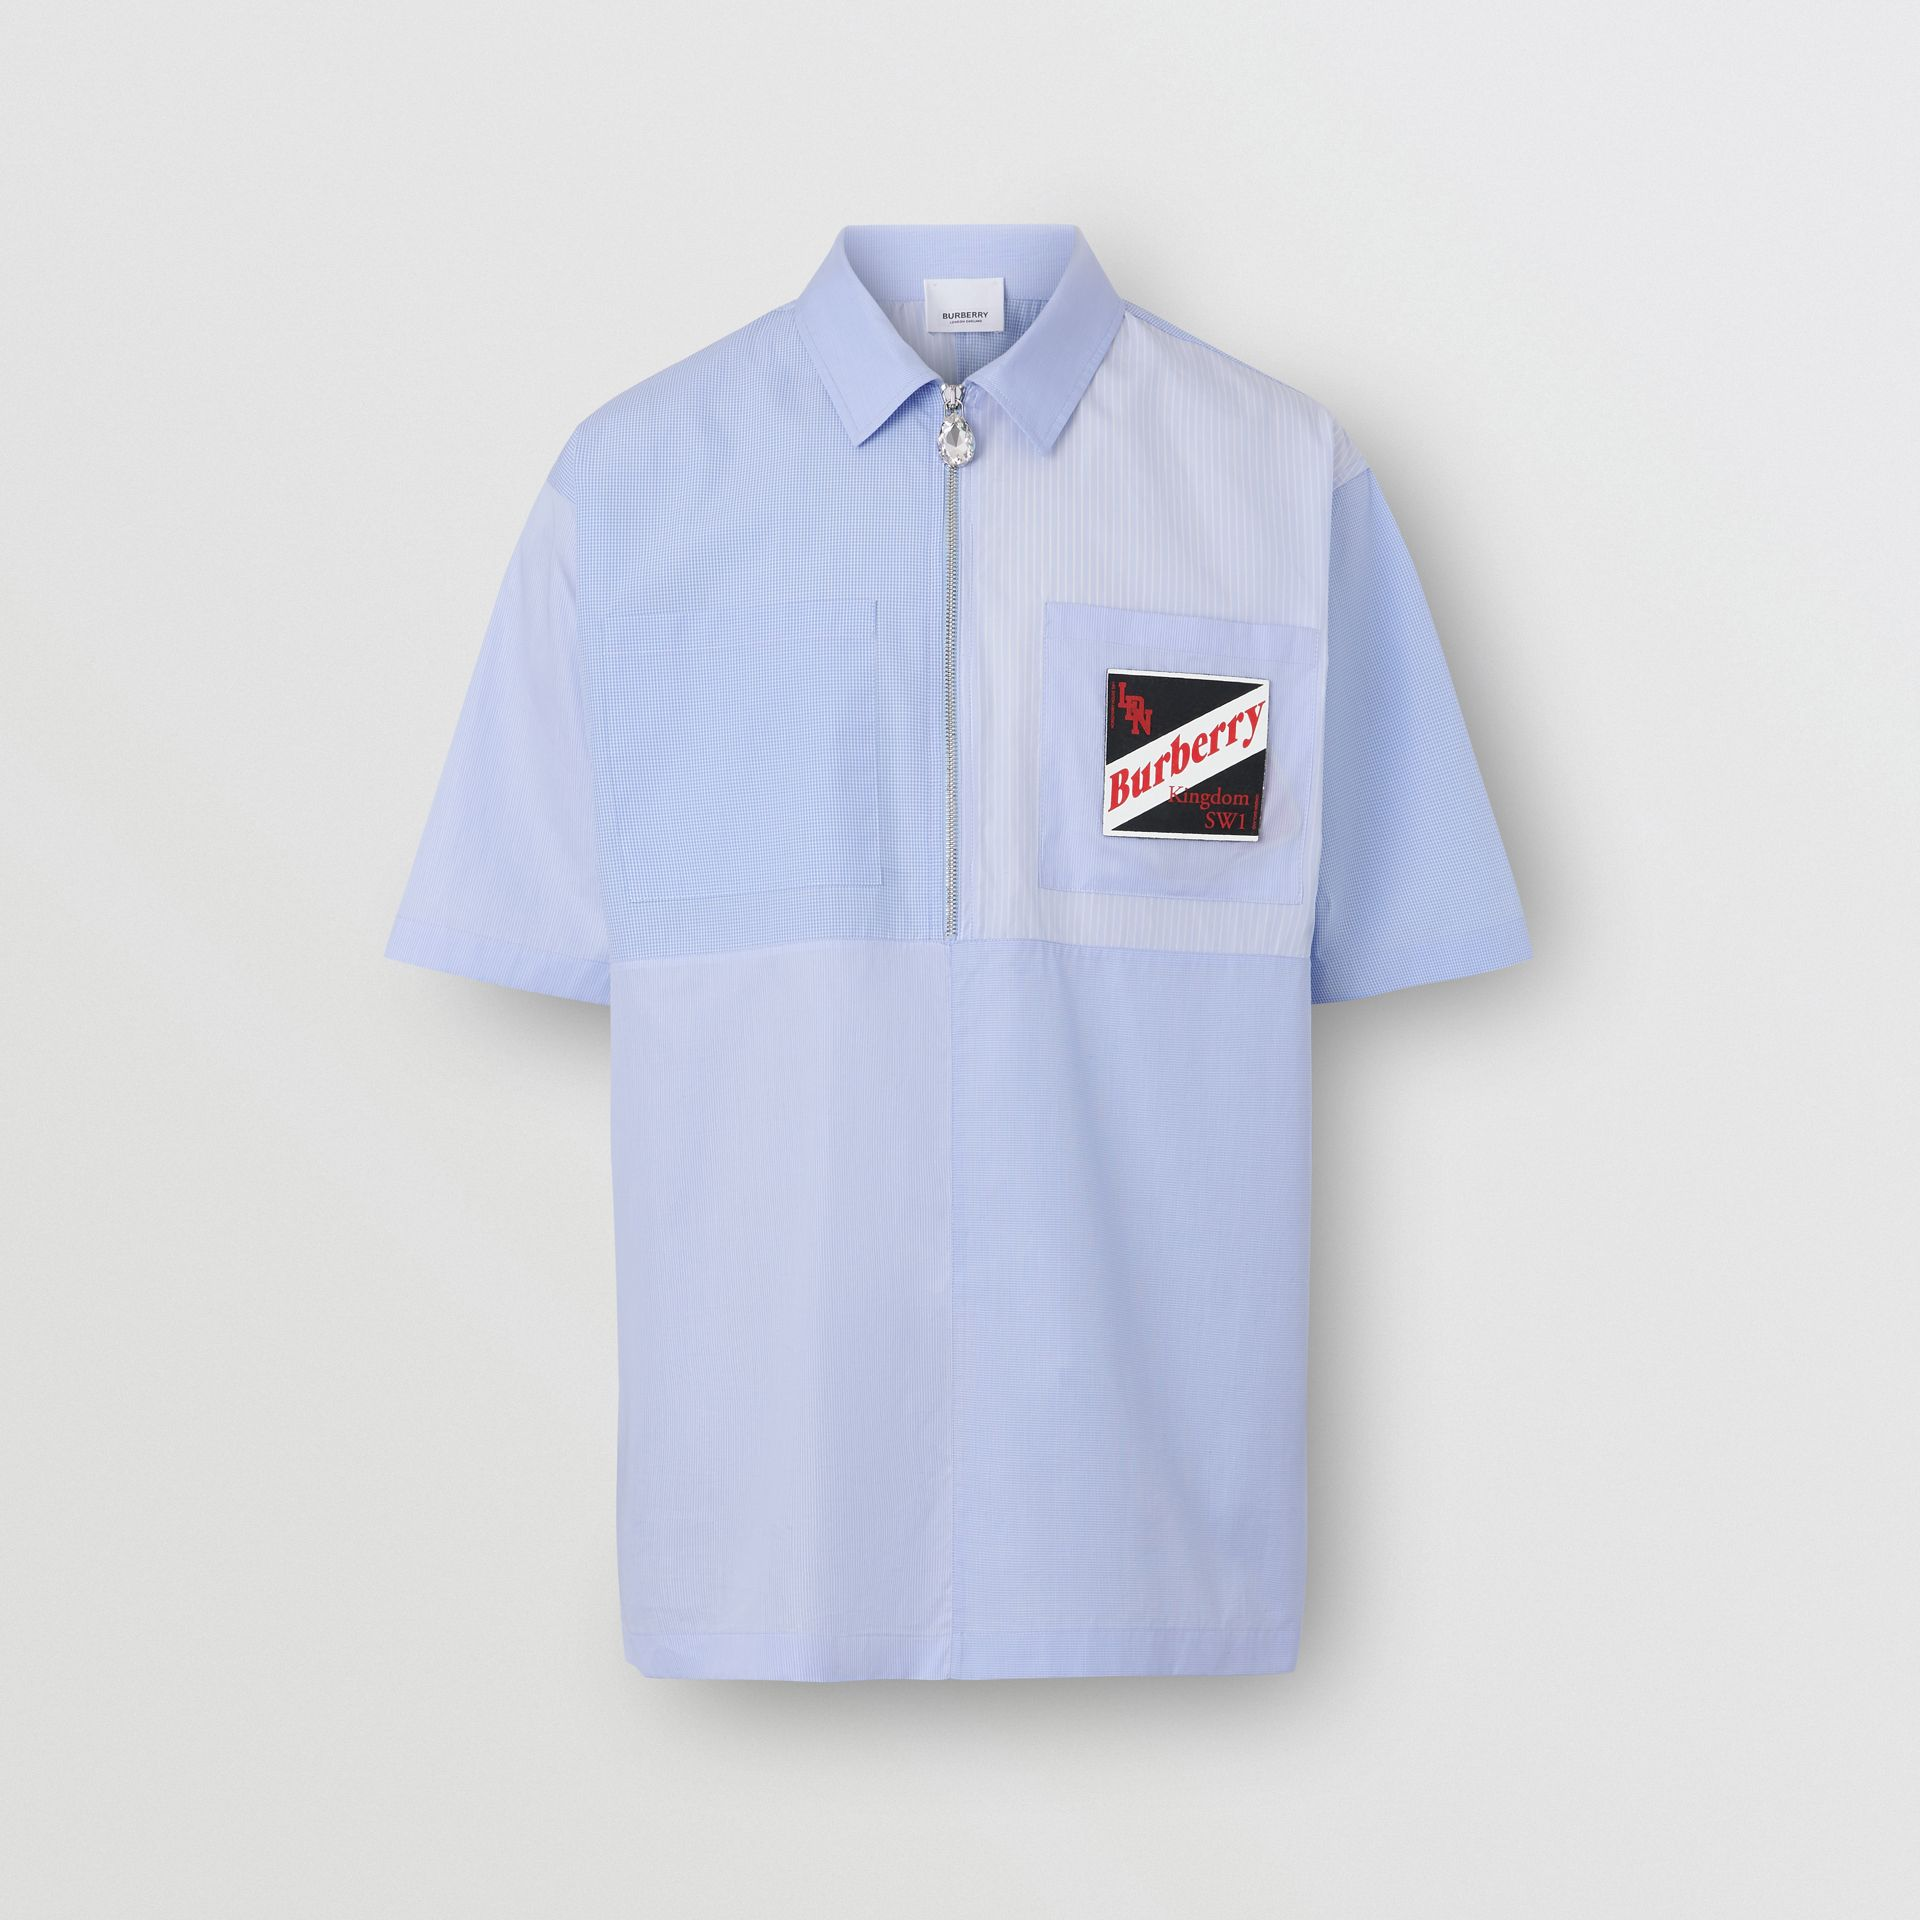 Short-sleeve Logo Graphic Patchwork Cotton Shirt in Pale Blue - Men | Burberry United Kingdom - gallery image 3